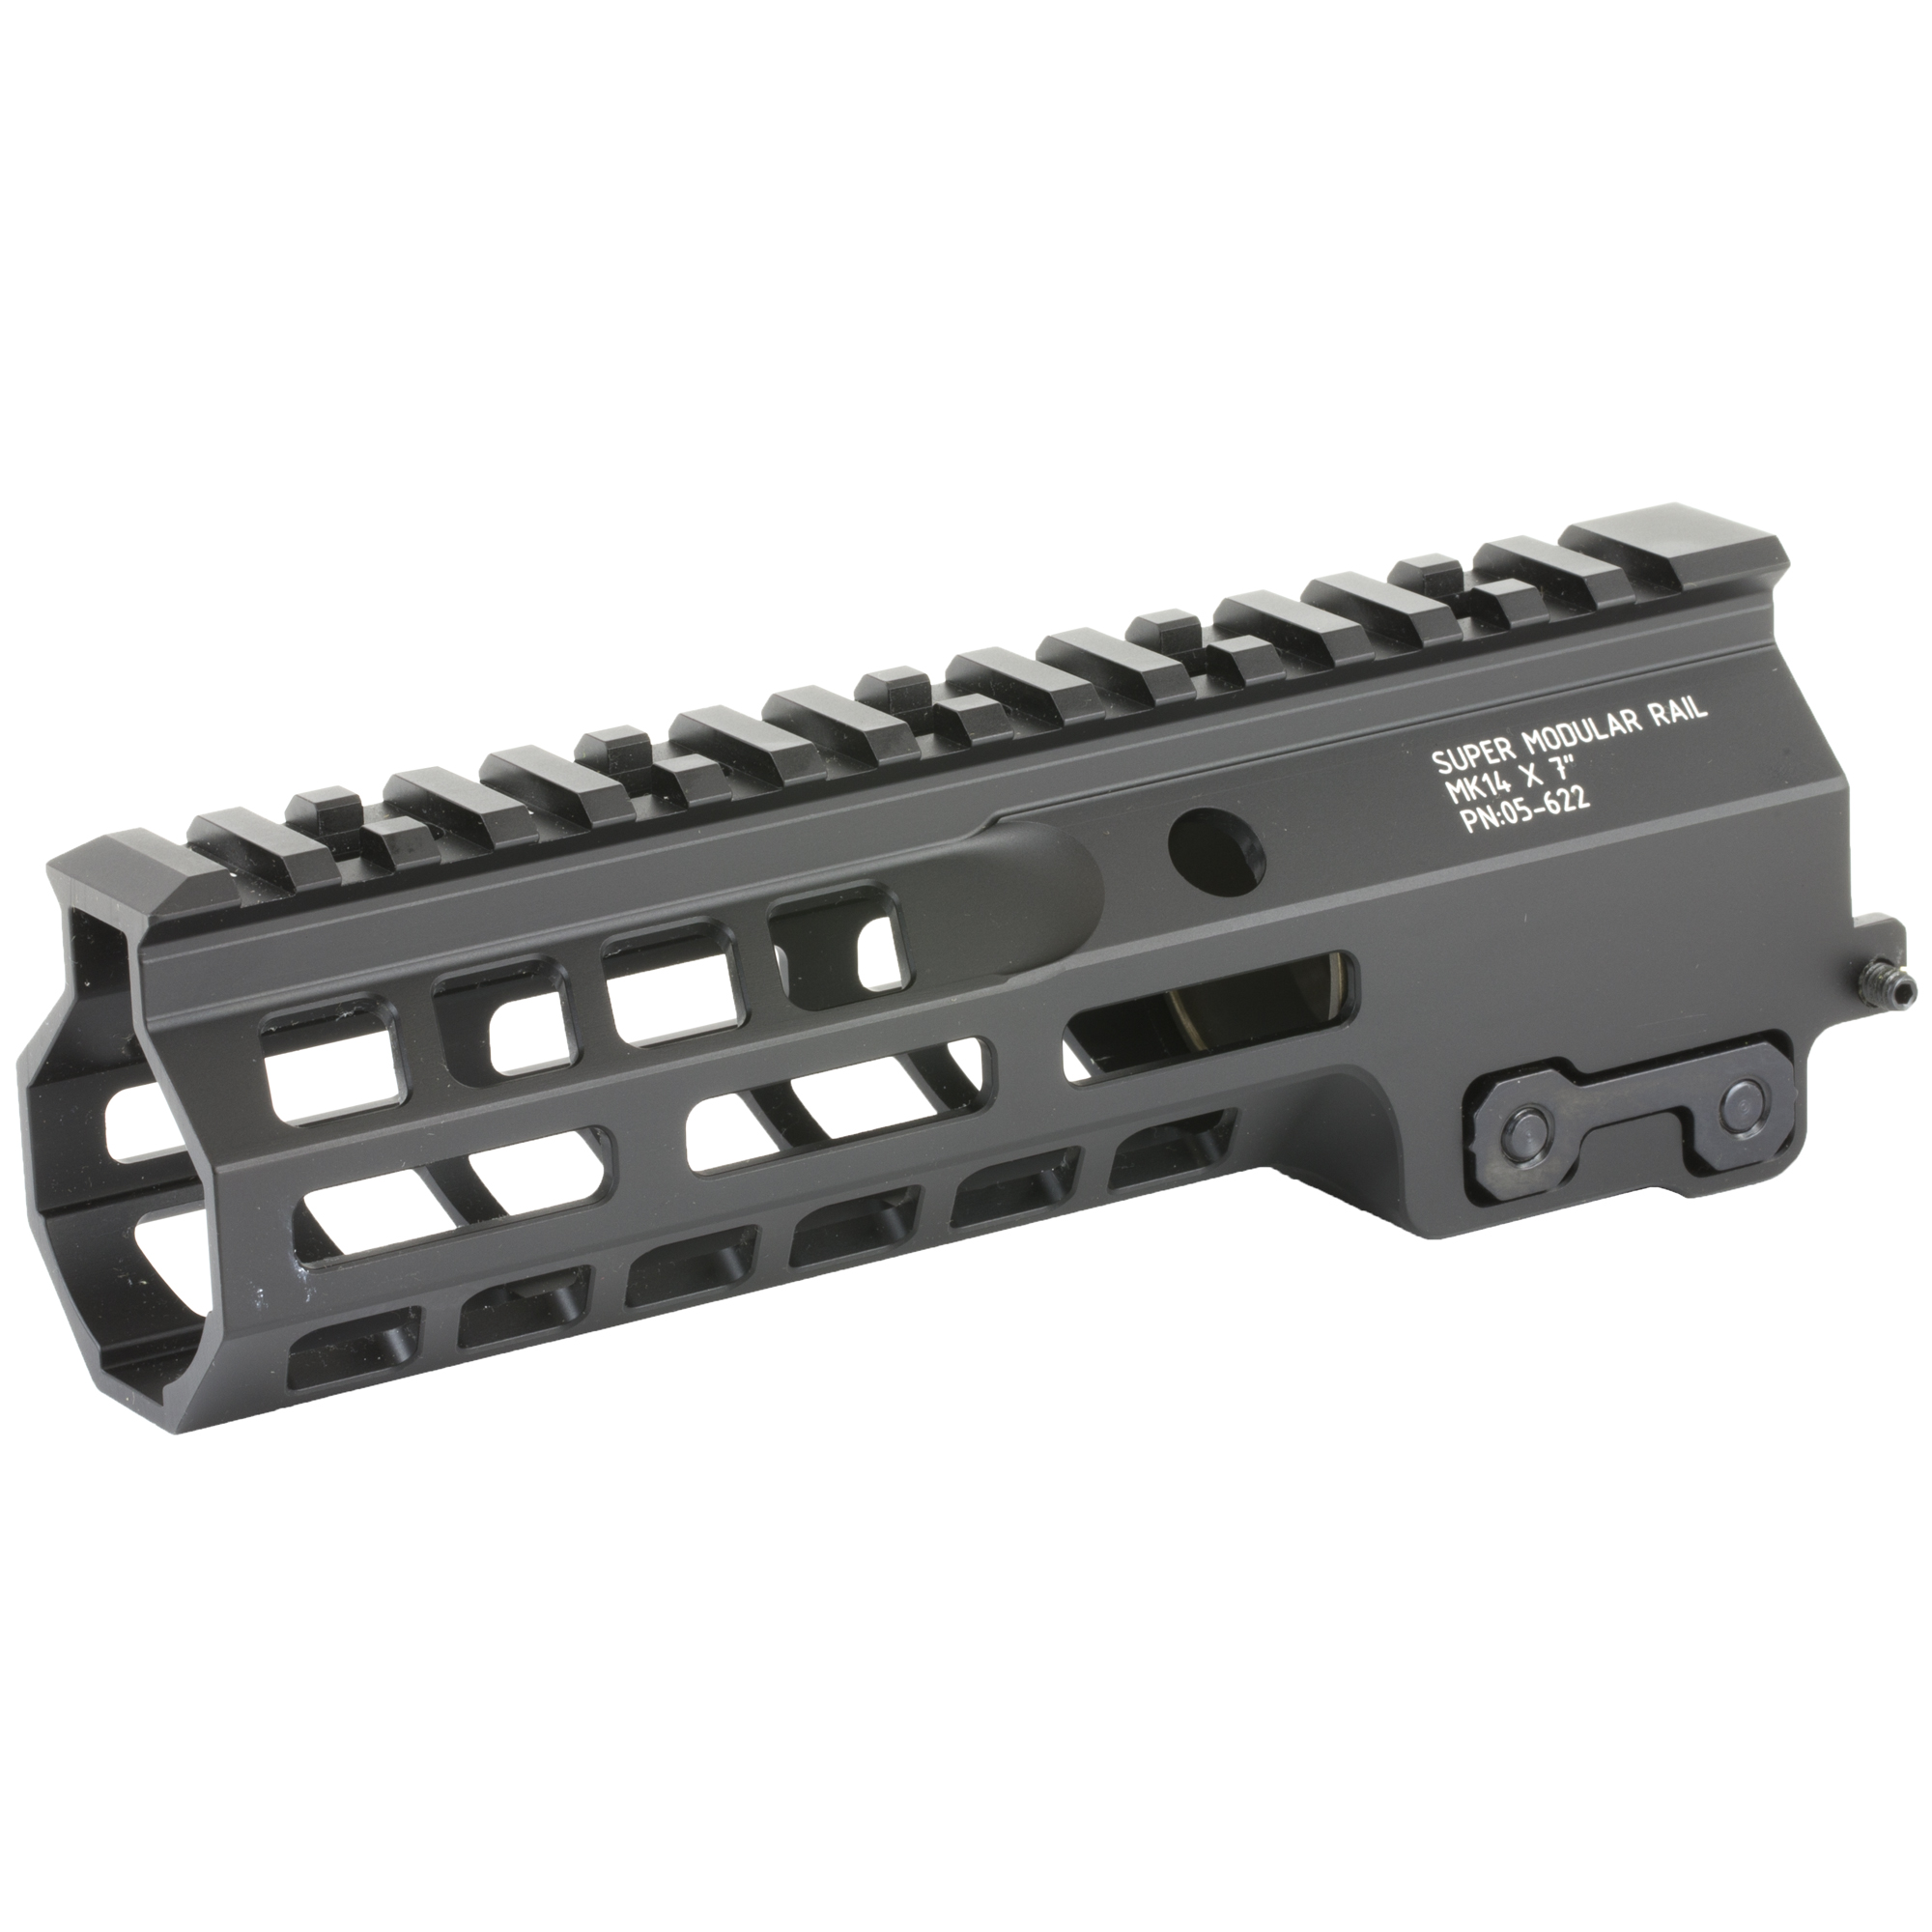 """Geissele's Super Modular 7"""" MK14 M-Lok Rail is the latest entry to the Geissele line up of Super Modular Rails. The new handguard design offers a smaller diameter and overall height to create a slimmer package. Included with the MK14 Super Modular Rail is an updated version of the proven Geissele Barrel Nut design"""" not only providing ease of installation but superior rigidity. The long surface contact of the 2.25"""" barrel nut interfaces with the receiver creating a platform that can be trusted to be straight and true the entire length of the free float rail. The MK14 is 3d precision machined using 6061-T6 Aluminum due to its strong"""" rigid and lightweight properties. Utilizing Magpul's M-LOK technology in the 3"""" 6"""" and 9 o'clock positions allow the end user full customization and modularity of their rifle to securely mount lights"""" bipods and other firearm accessories. The Geissele MK14 Super Modular rail is Type 3 Hardcoat Anodized. This product is bundled with a low-profile Geissele Super Gas Block."""